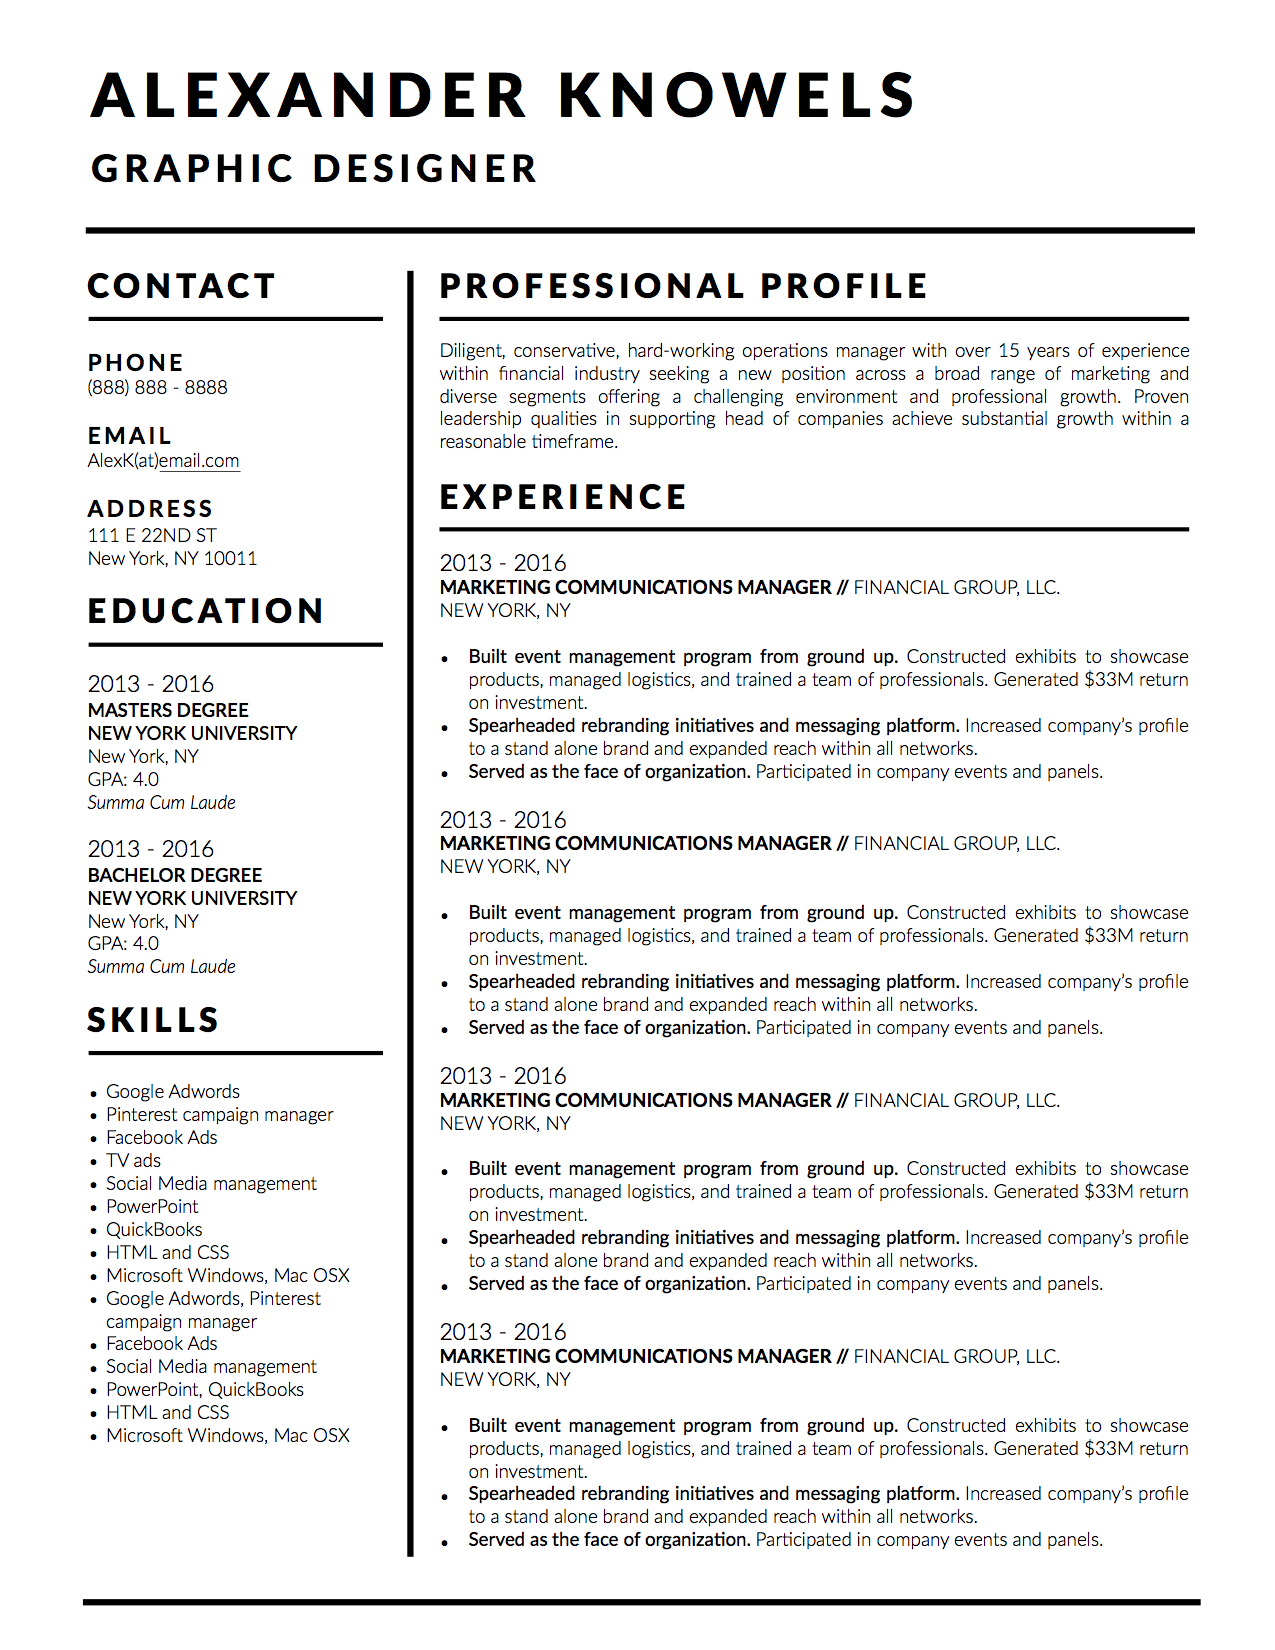 alexander knowels resume template 5 pack for ms word  apple pages  and google docs